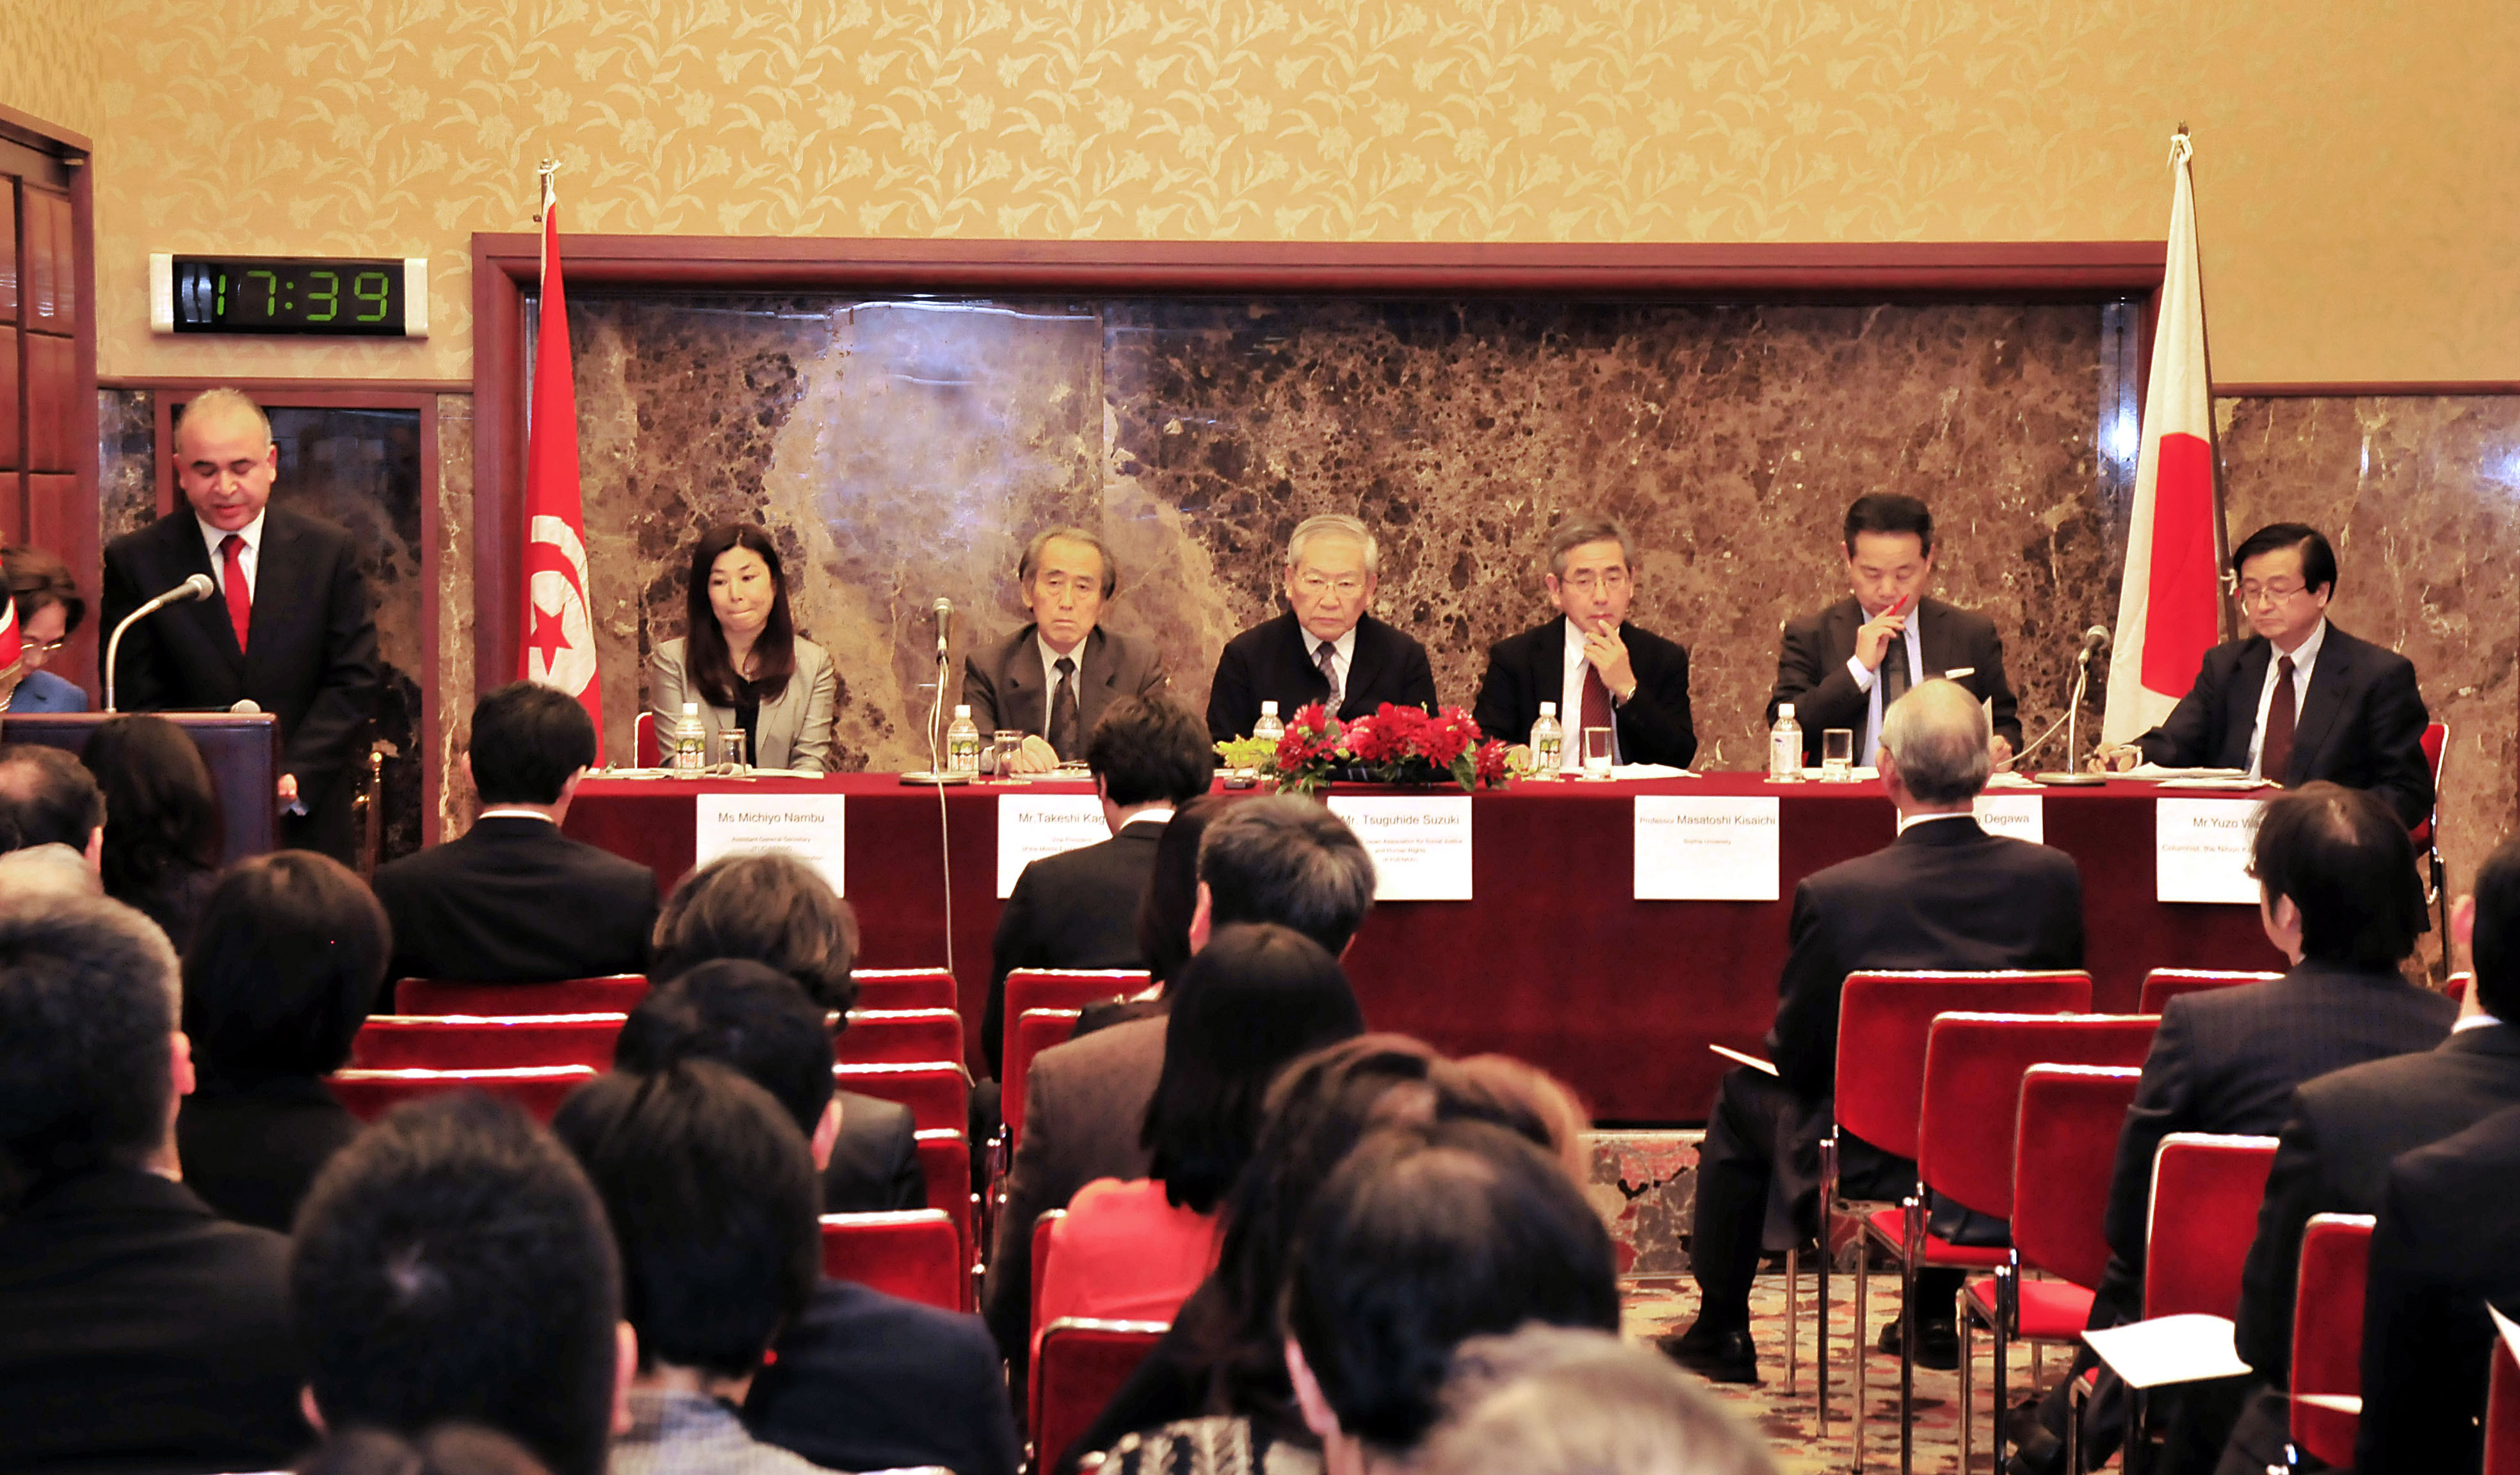 Conference panelists at the event |  TUNISIAN EMBASSY